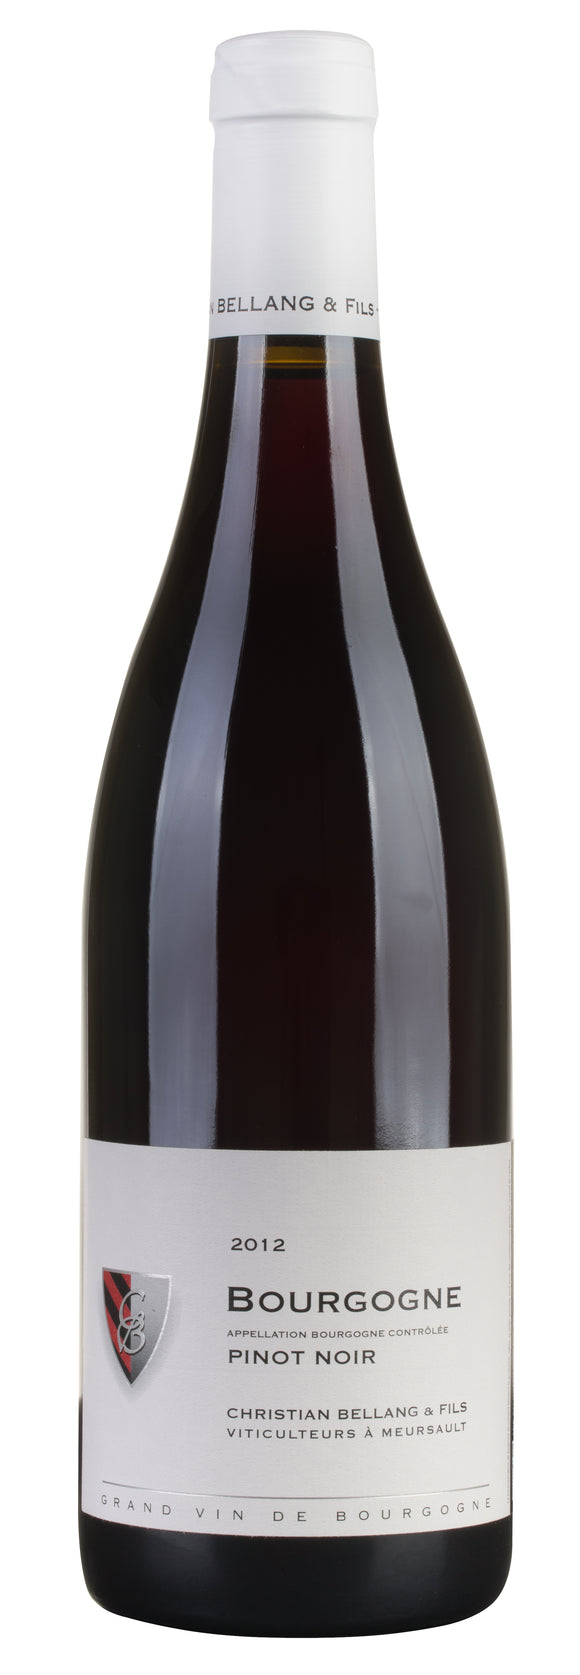 Christian Bellang & Fils Bourgogne Pinot Noir, France